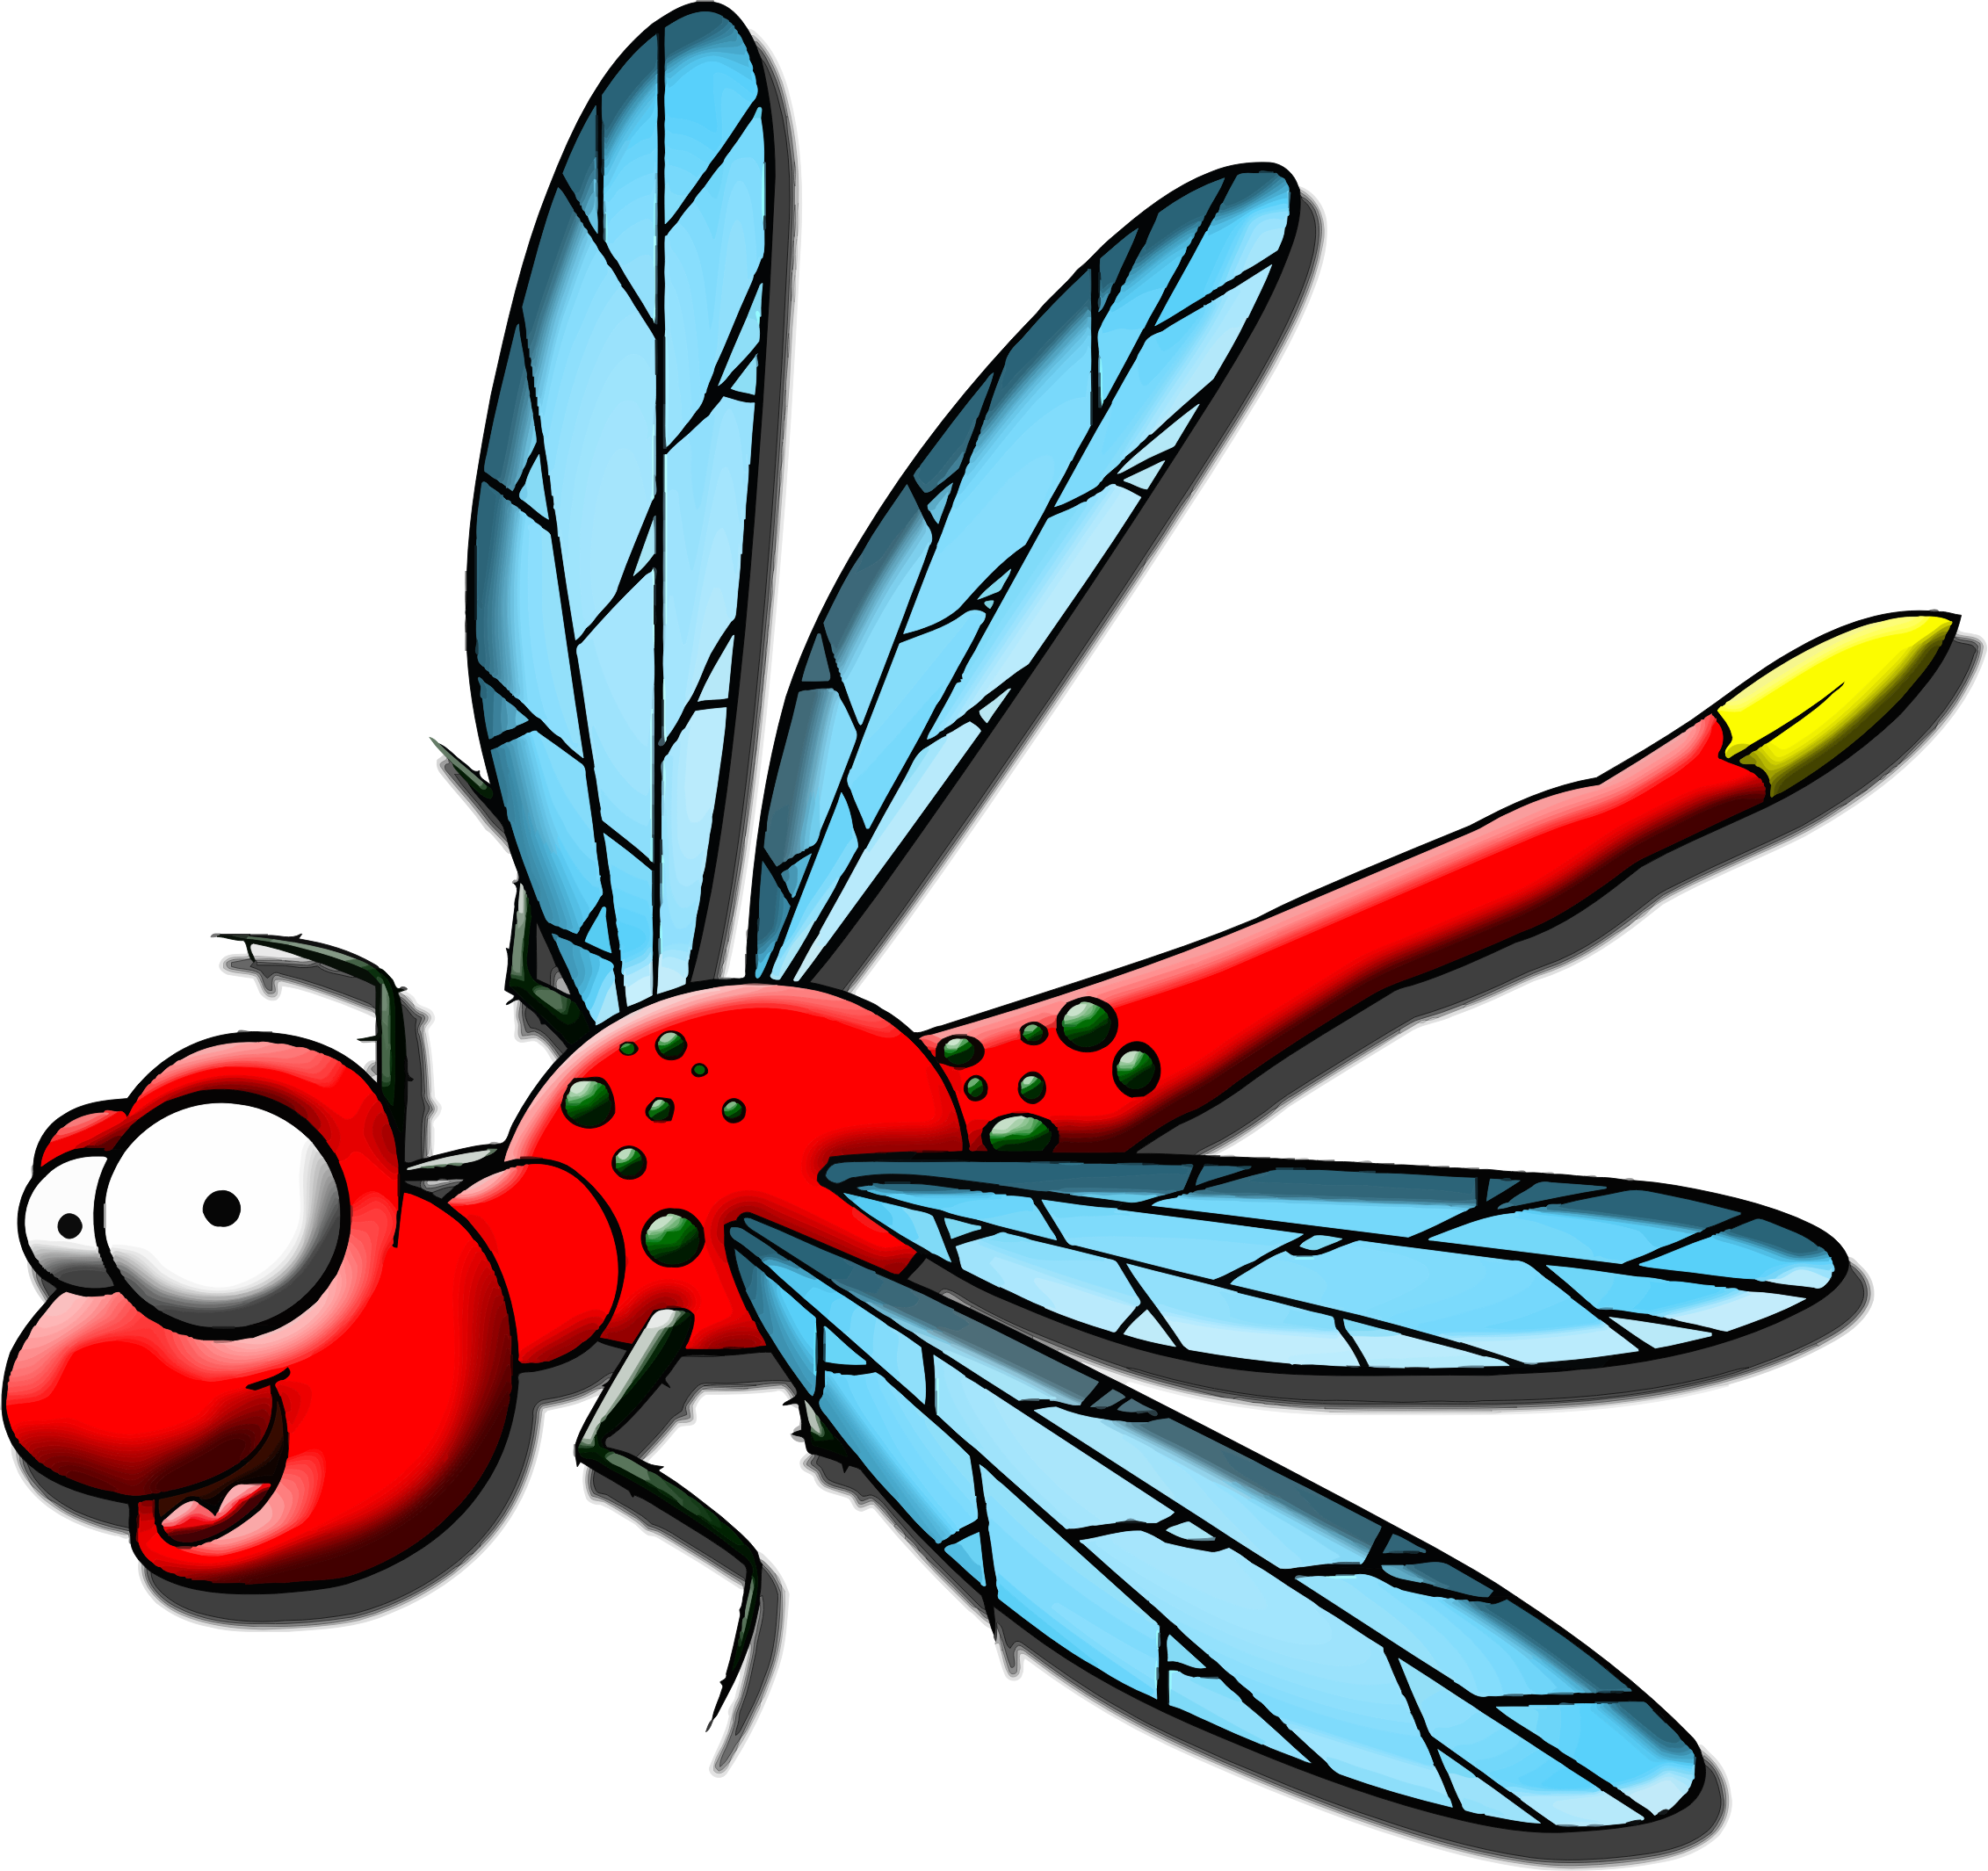 Cartoon big image png. Dragonfly clipart insect